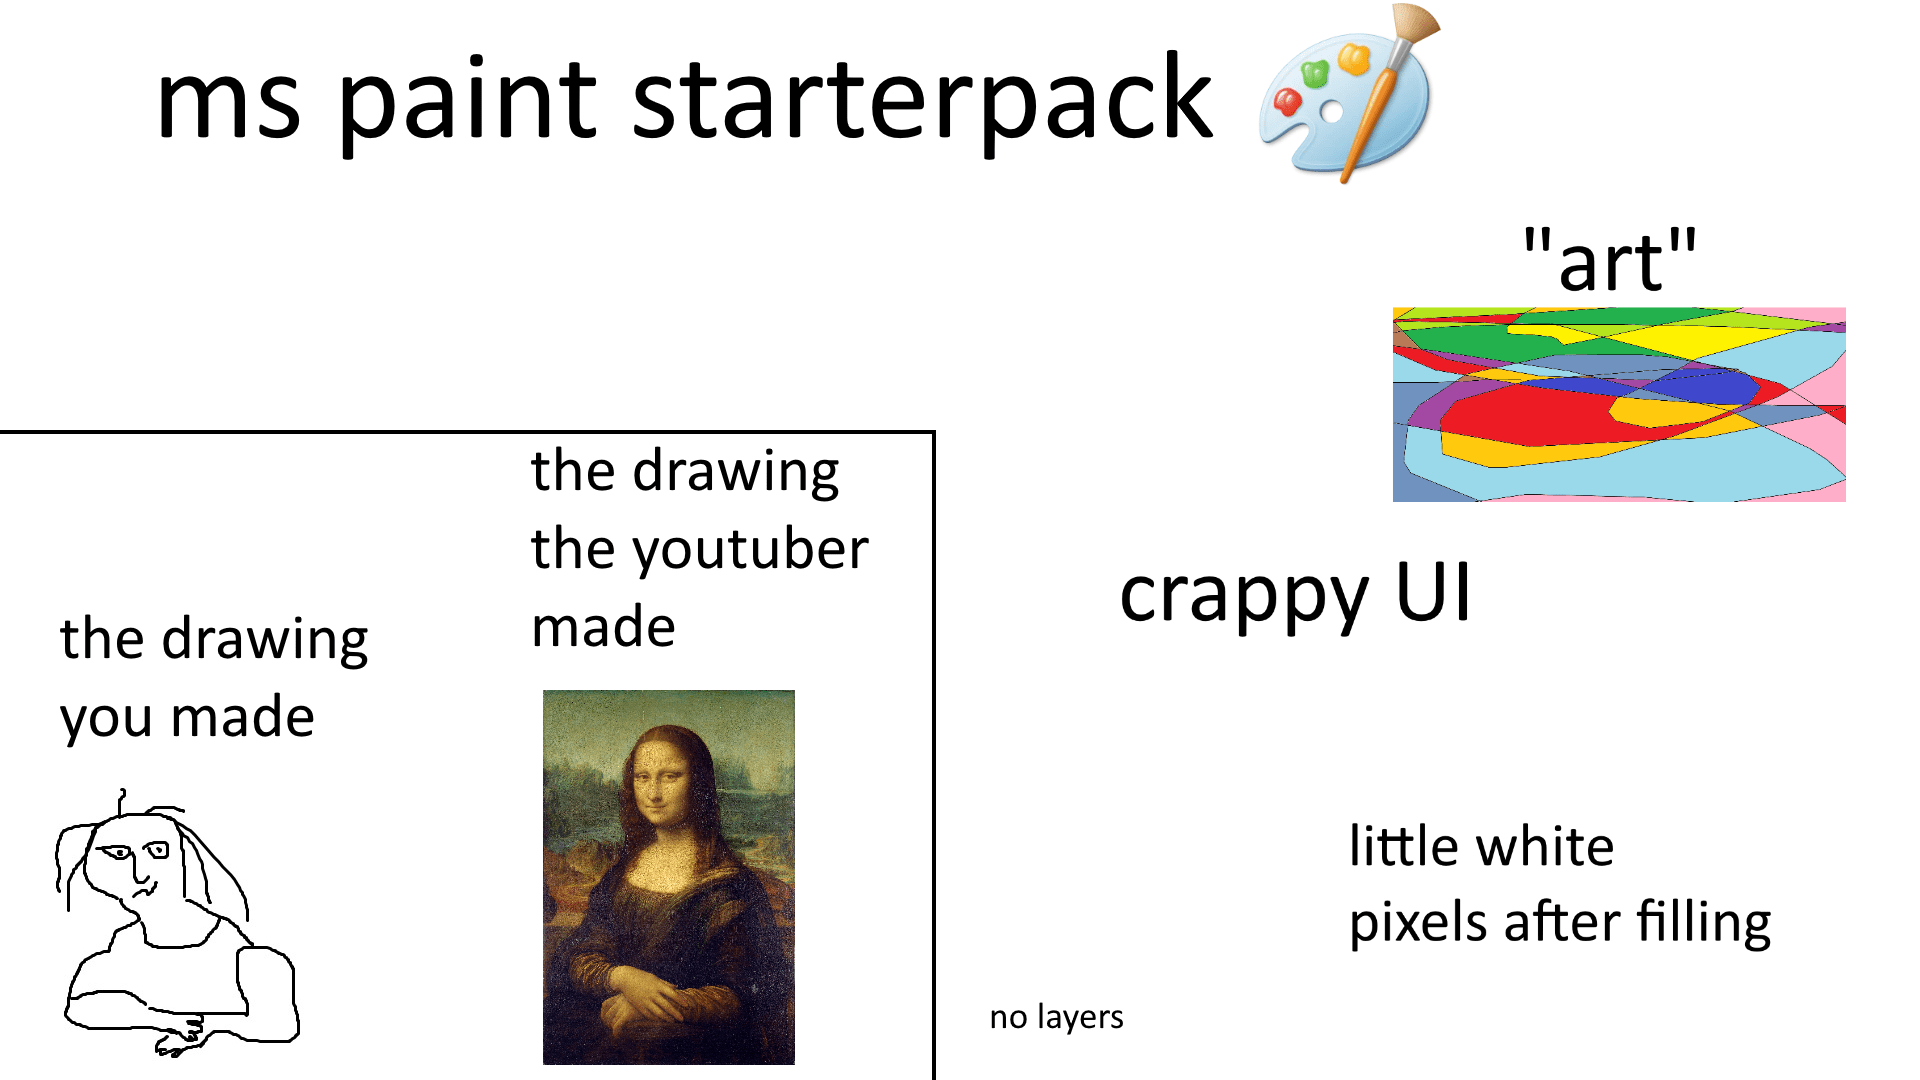 Ms Paint Starterpack R Starterpacks Starter Packs Know Your